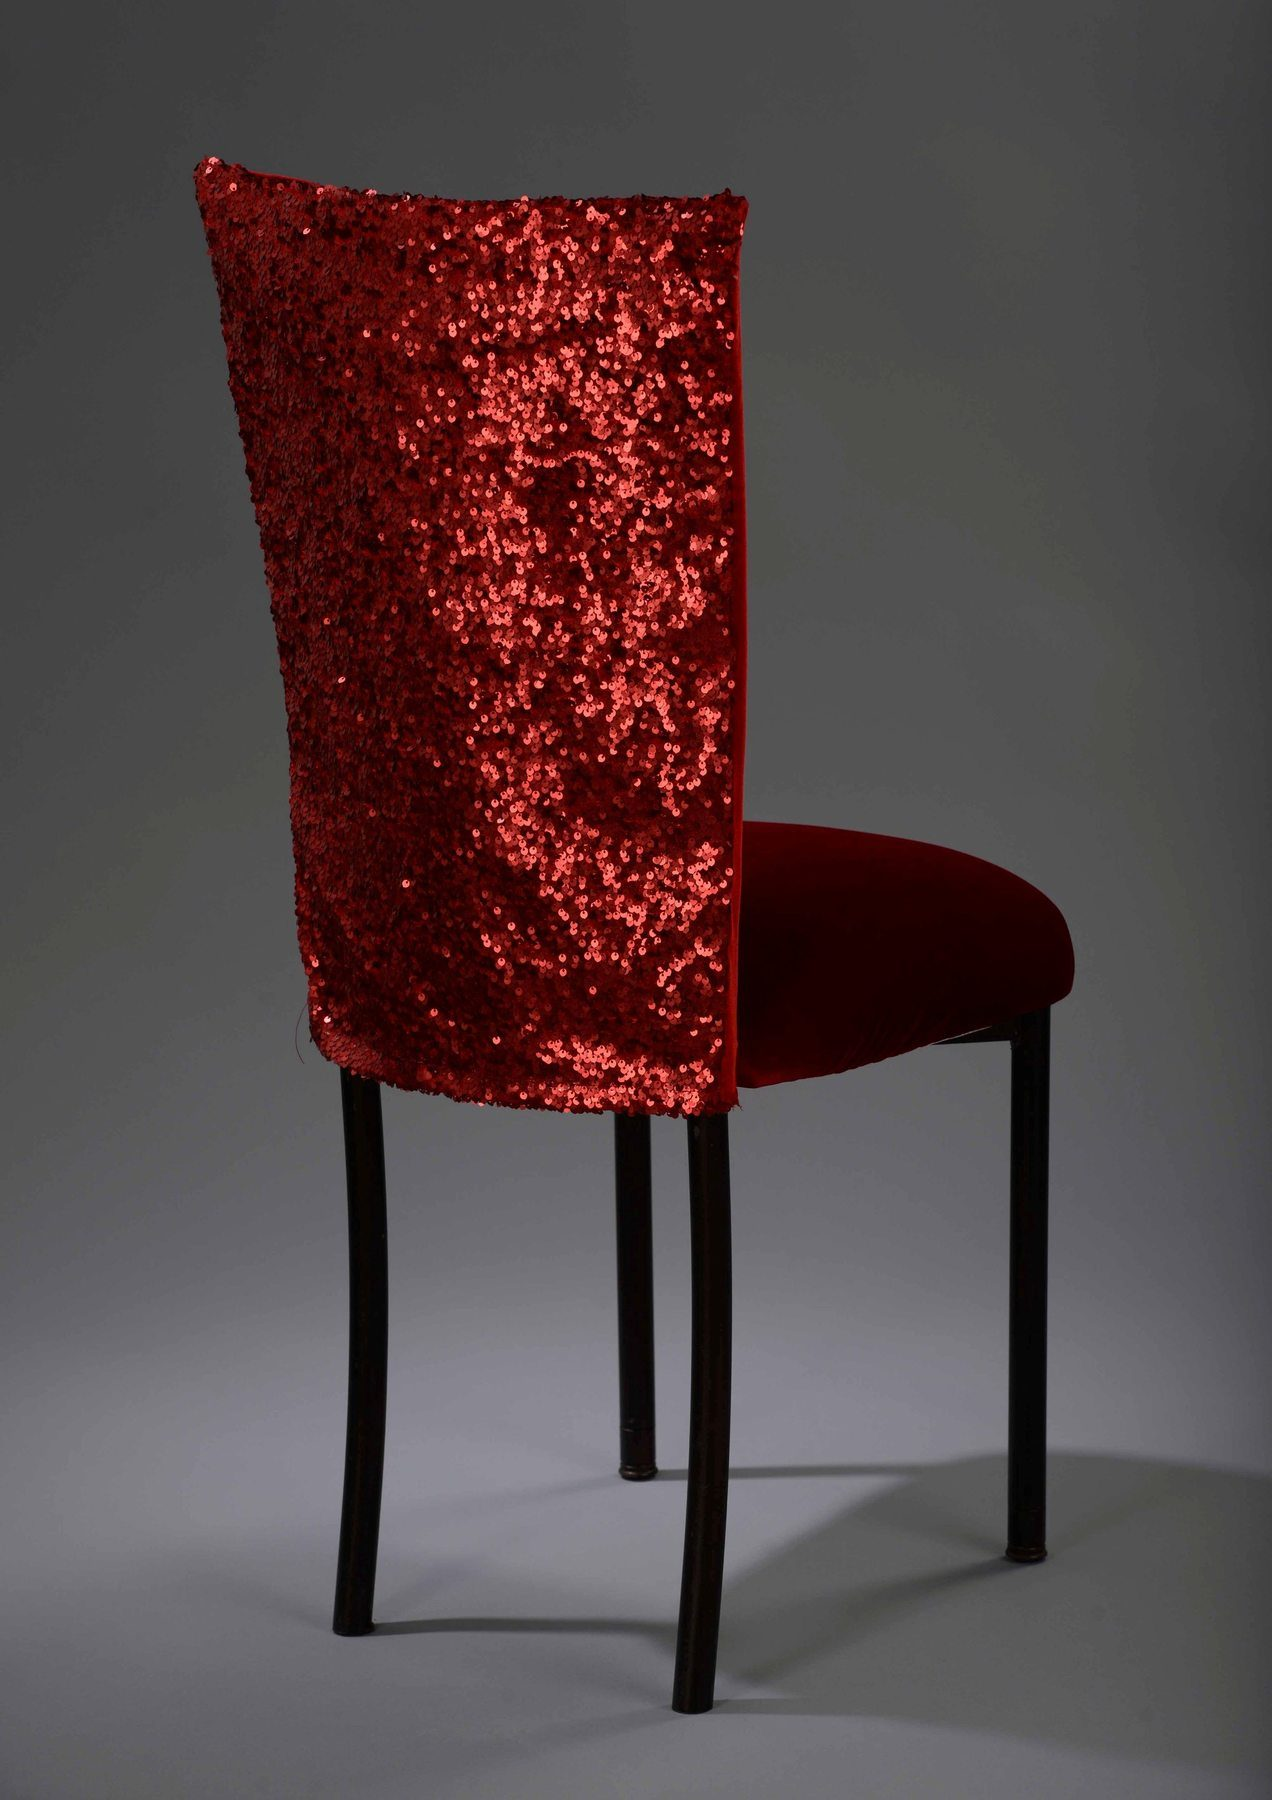 Red Sequin Taffeta Chameleon Chair Cover N 252 Age Designs